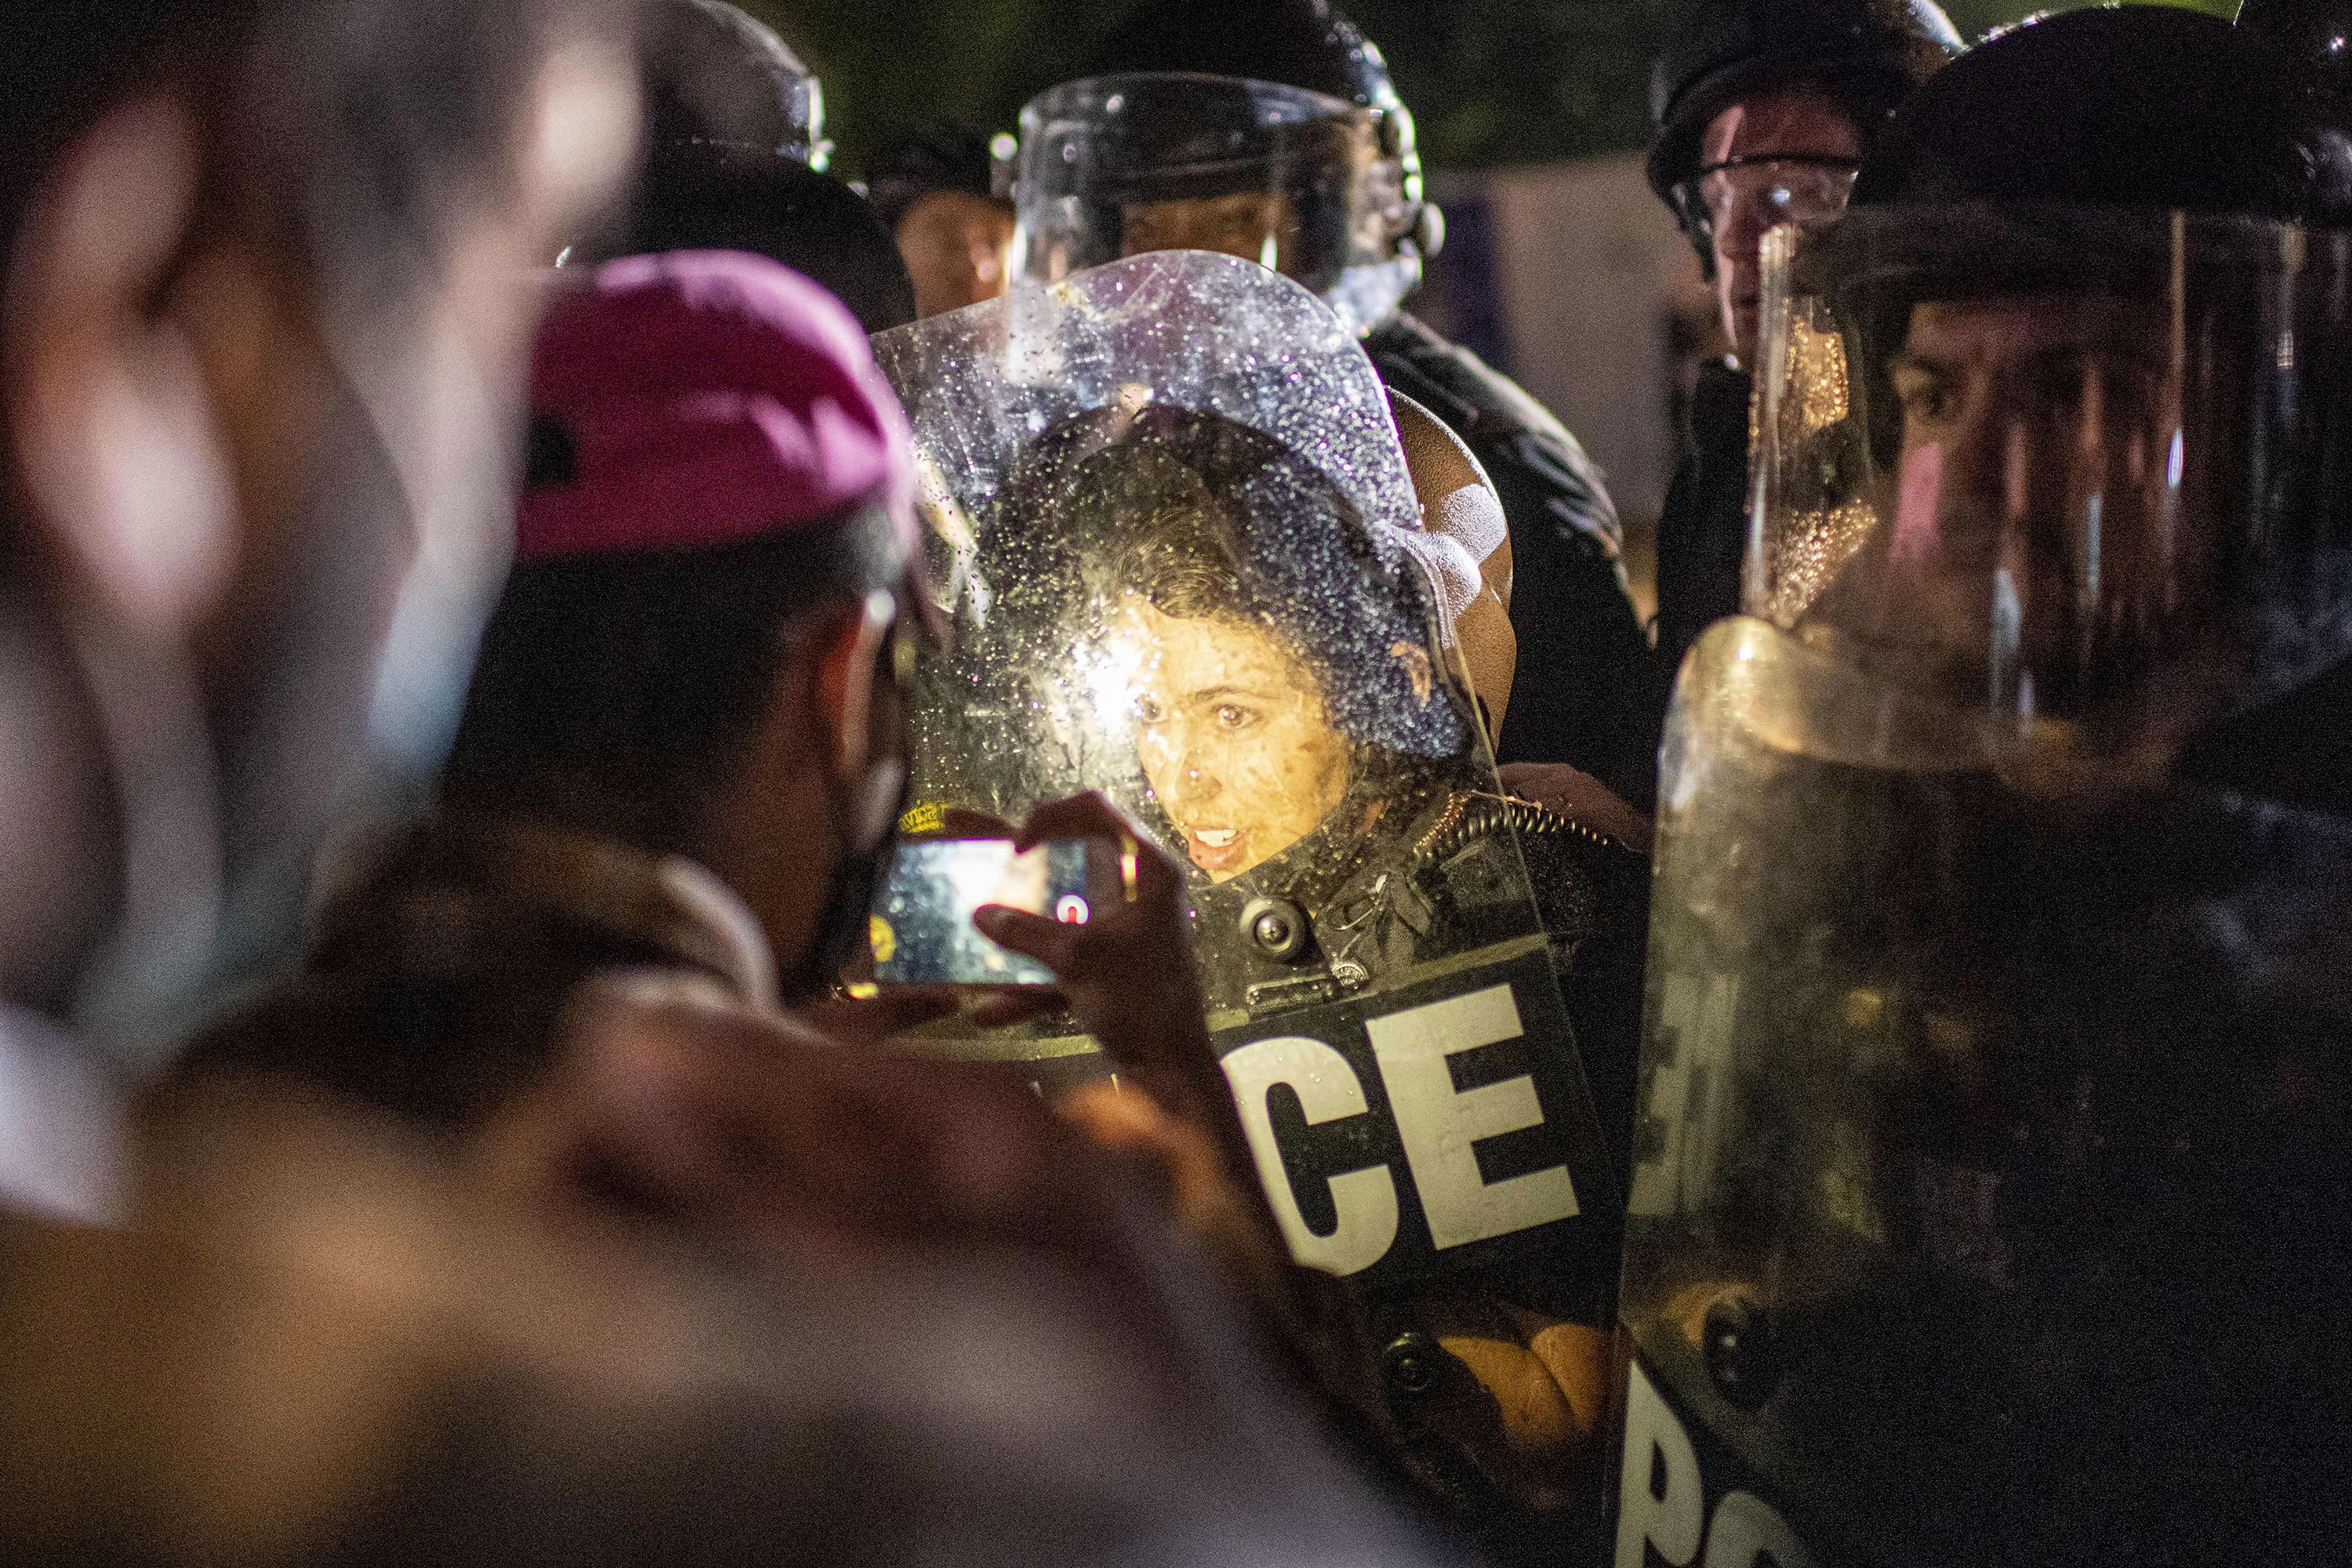 Protesters face off with police outside the White House in Washington in the early hours of May 30.